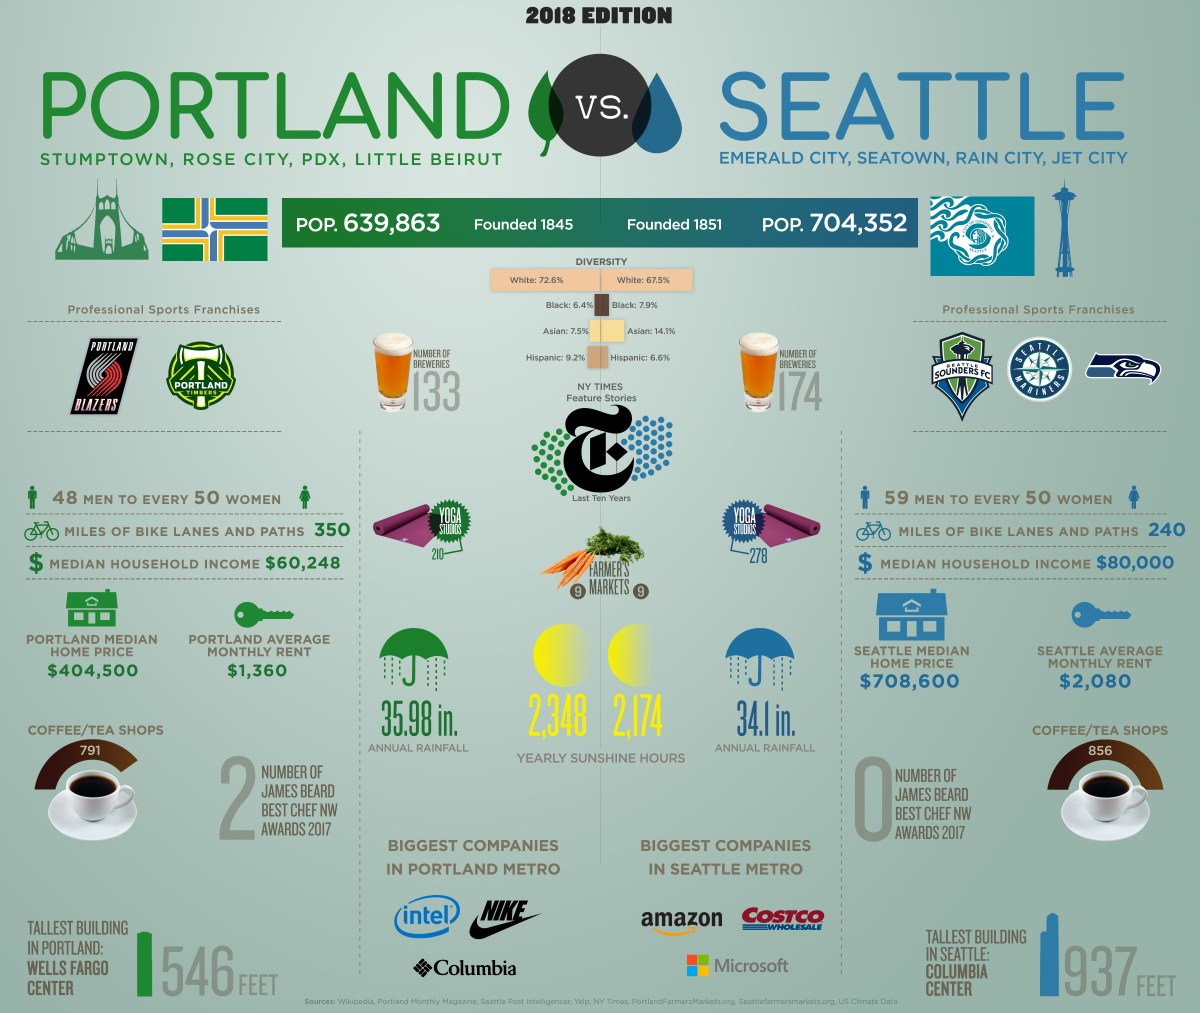 Portland Versus Seattle Infographic - 2018 Edition